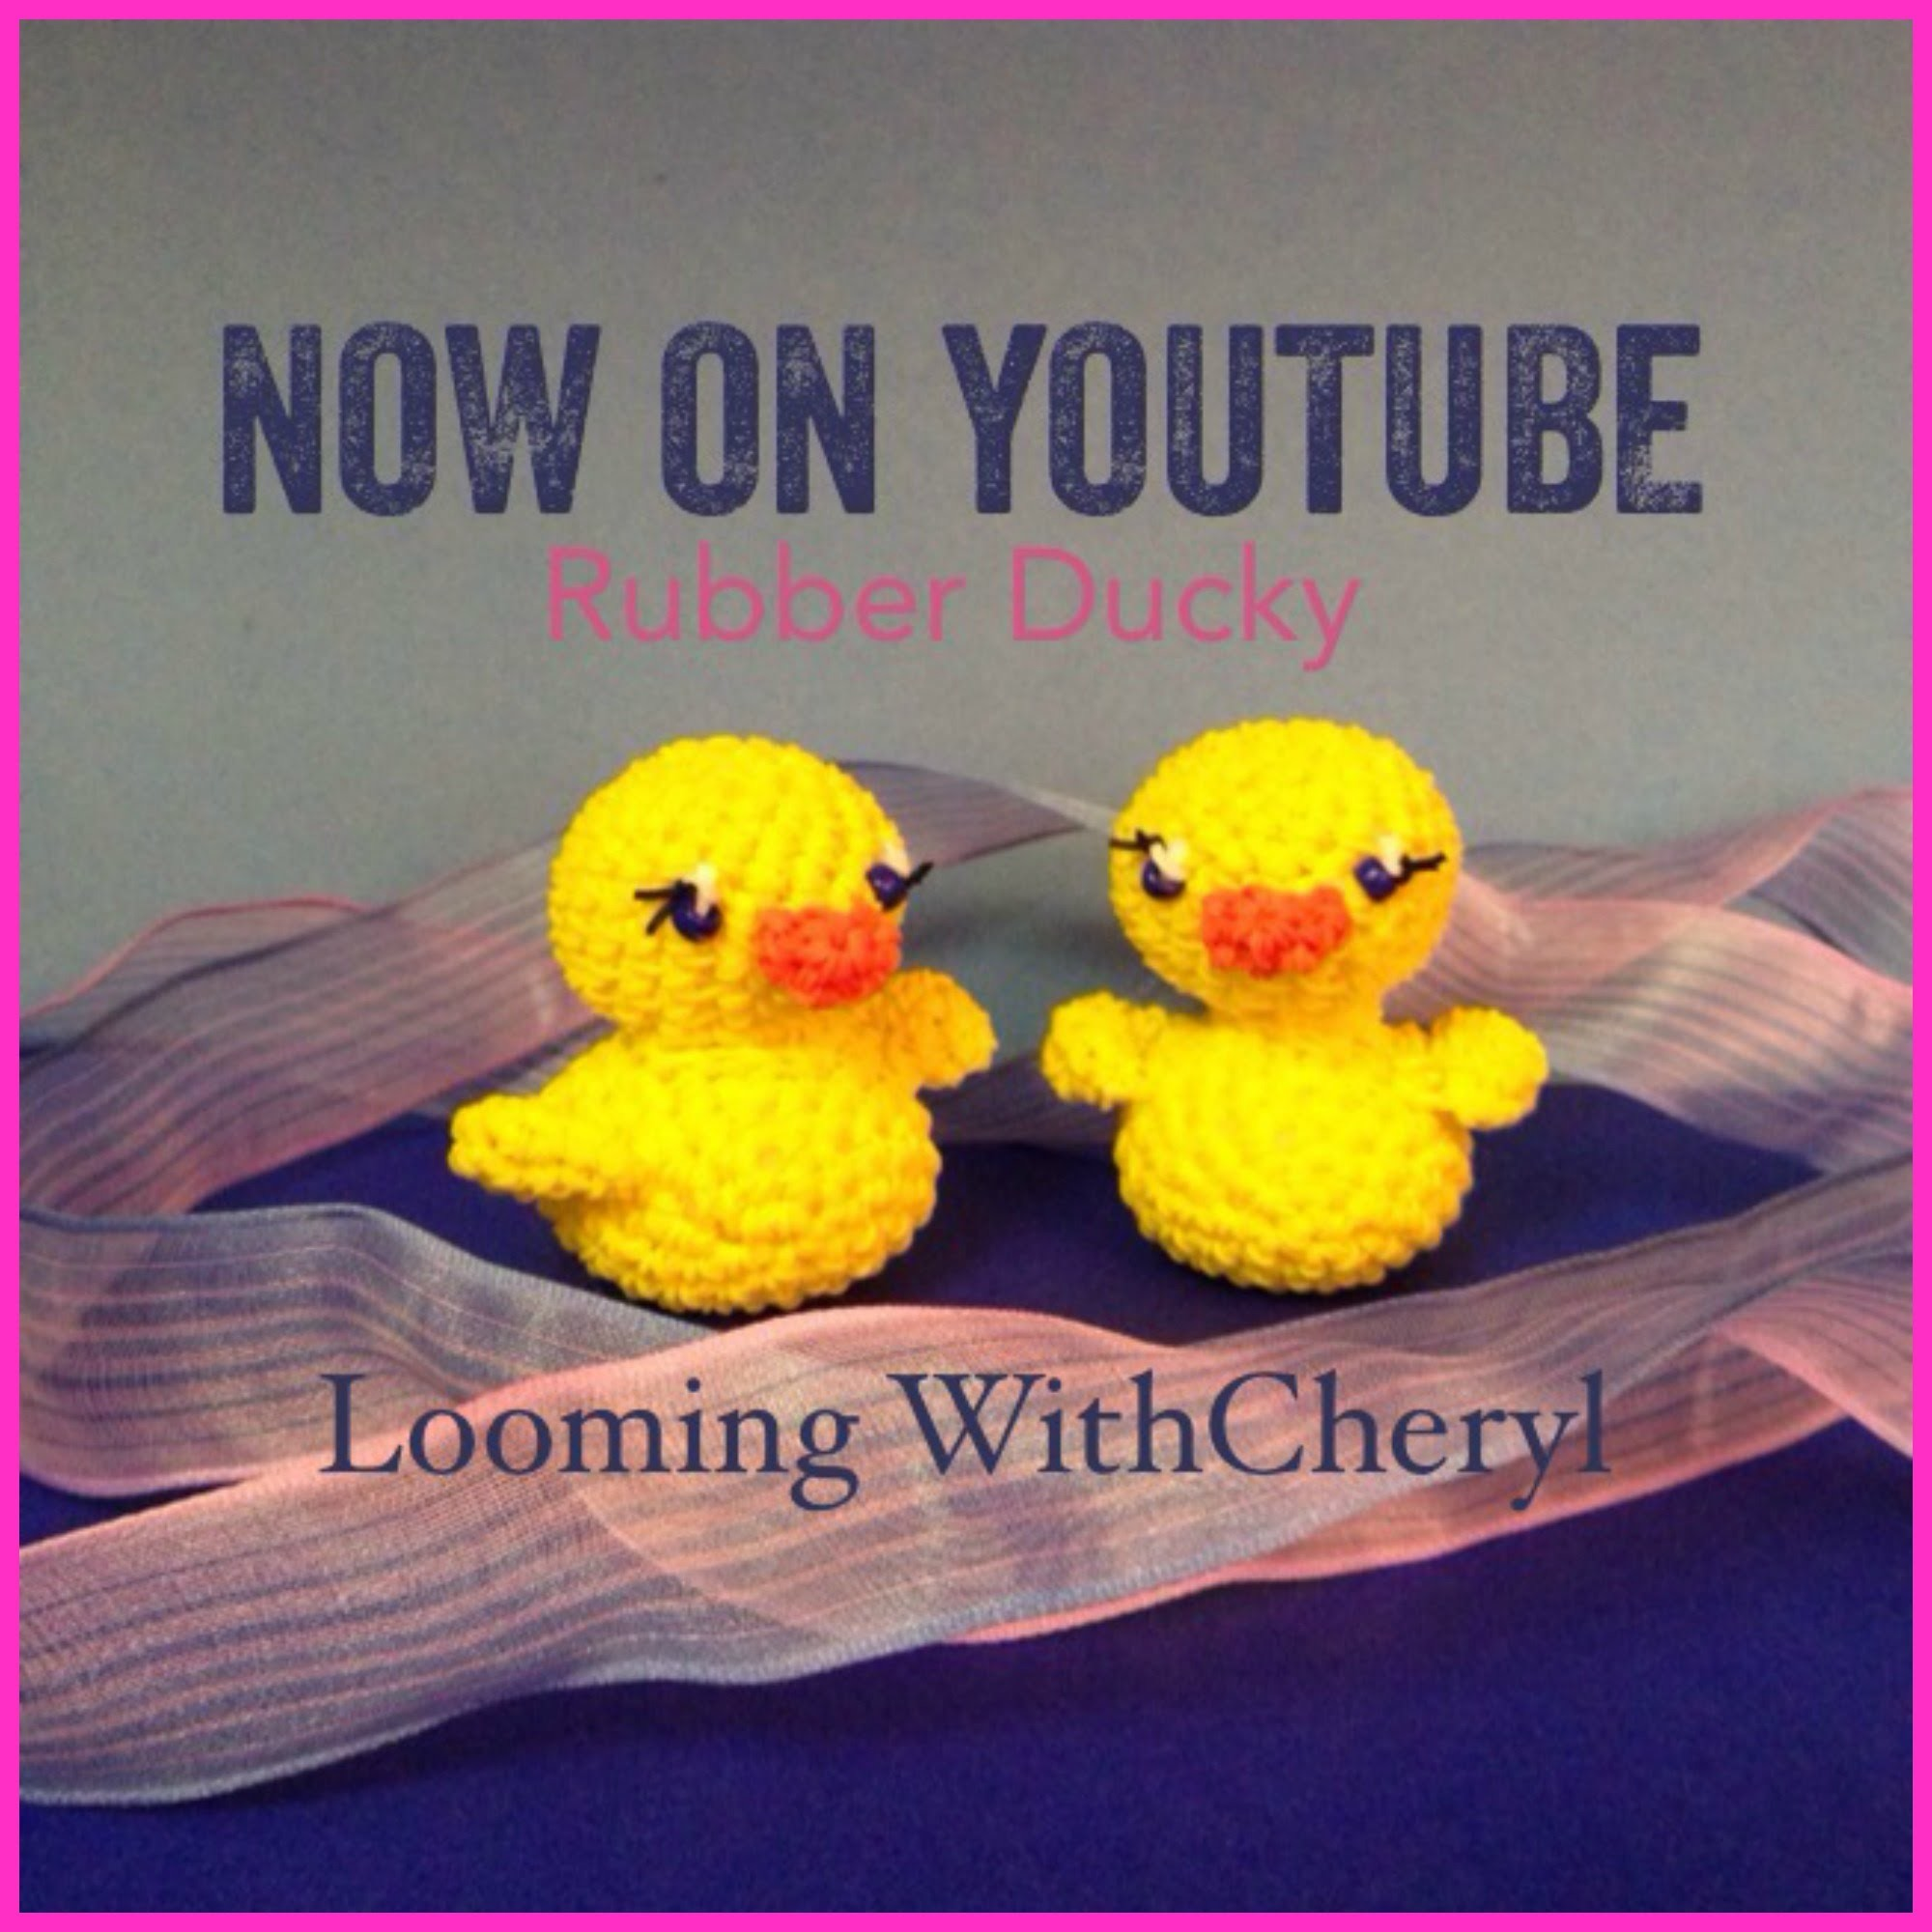 Rainbow Loom Rubber Ducky - Loomigurumi - Looming WithCheryl